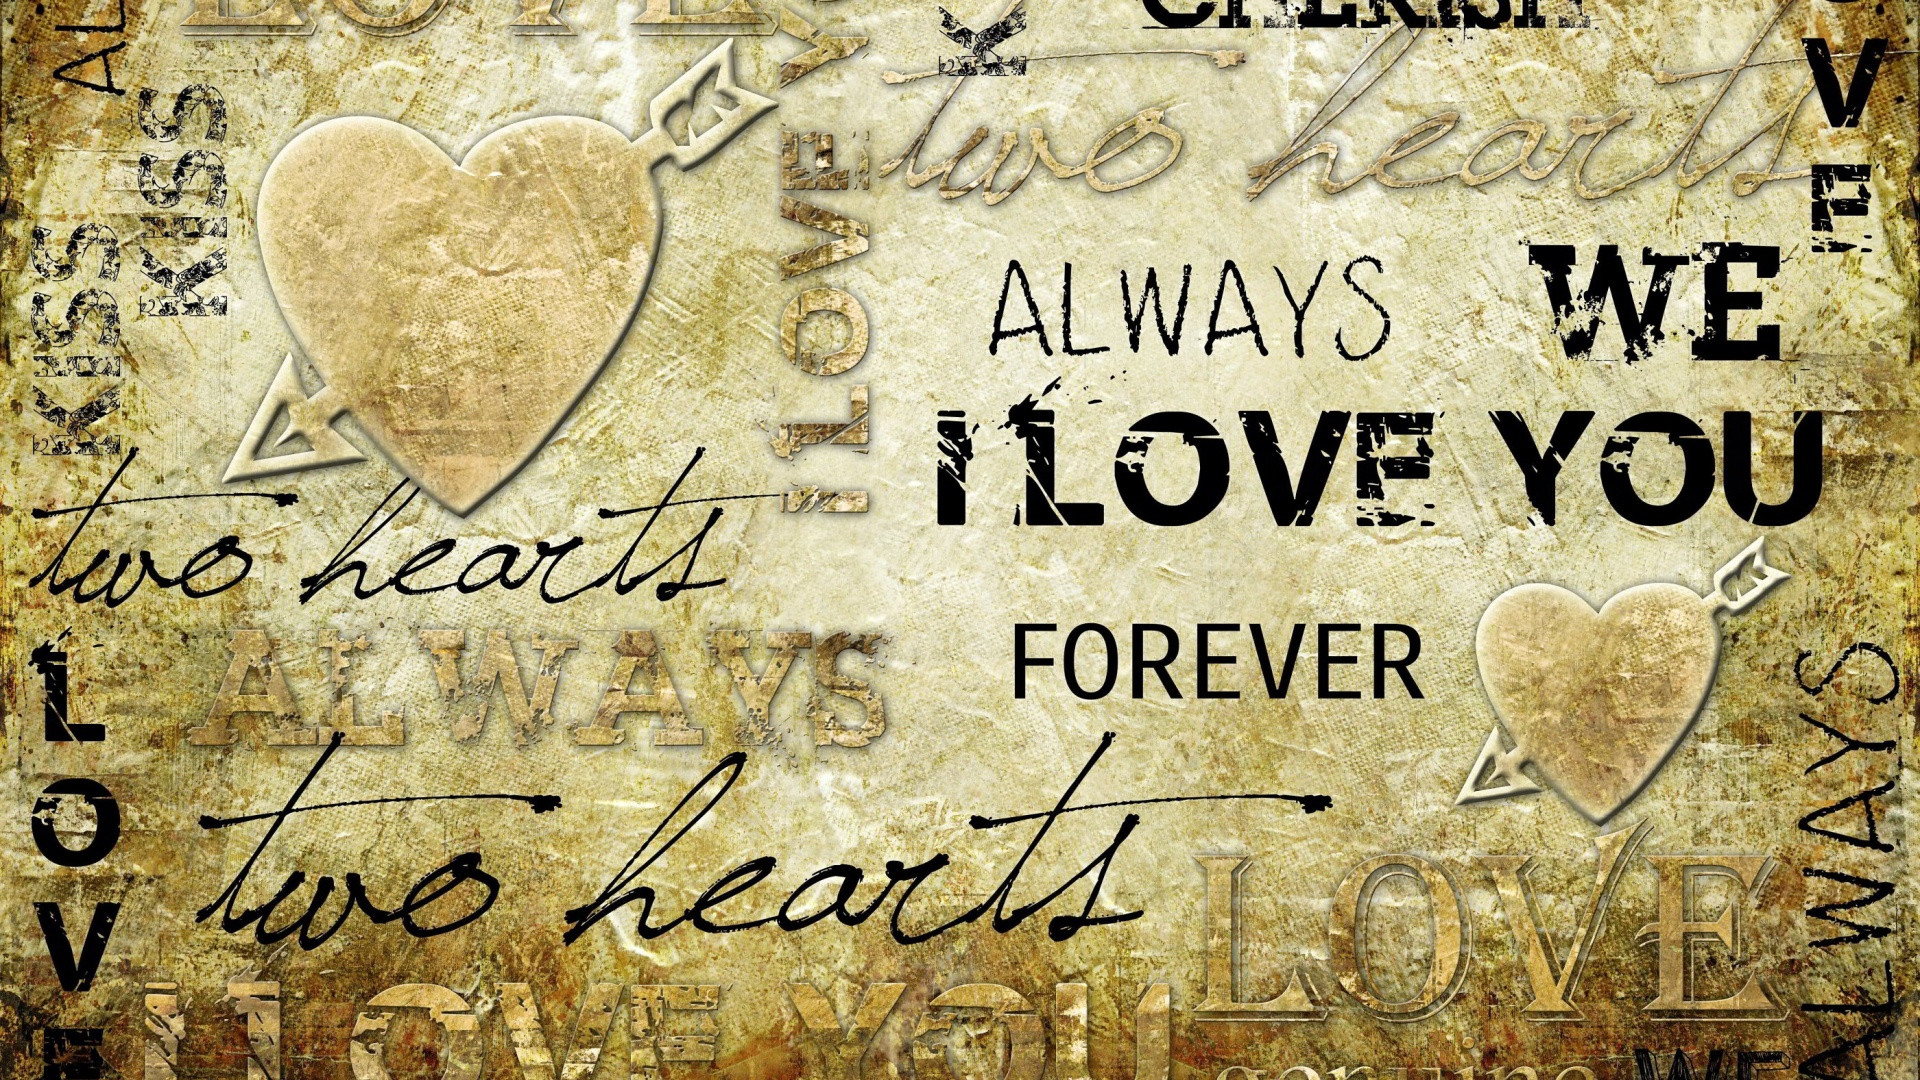 Wallpaper Love Forever Quotes : love Full HD Wallpaper and Hintergrund 1920x1080 ID:456232